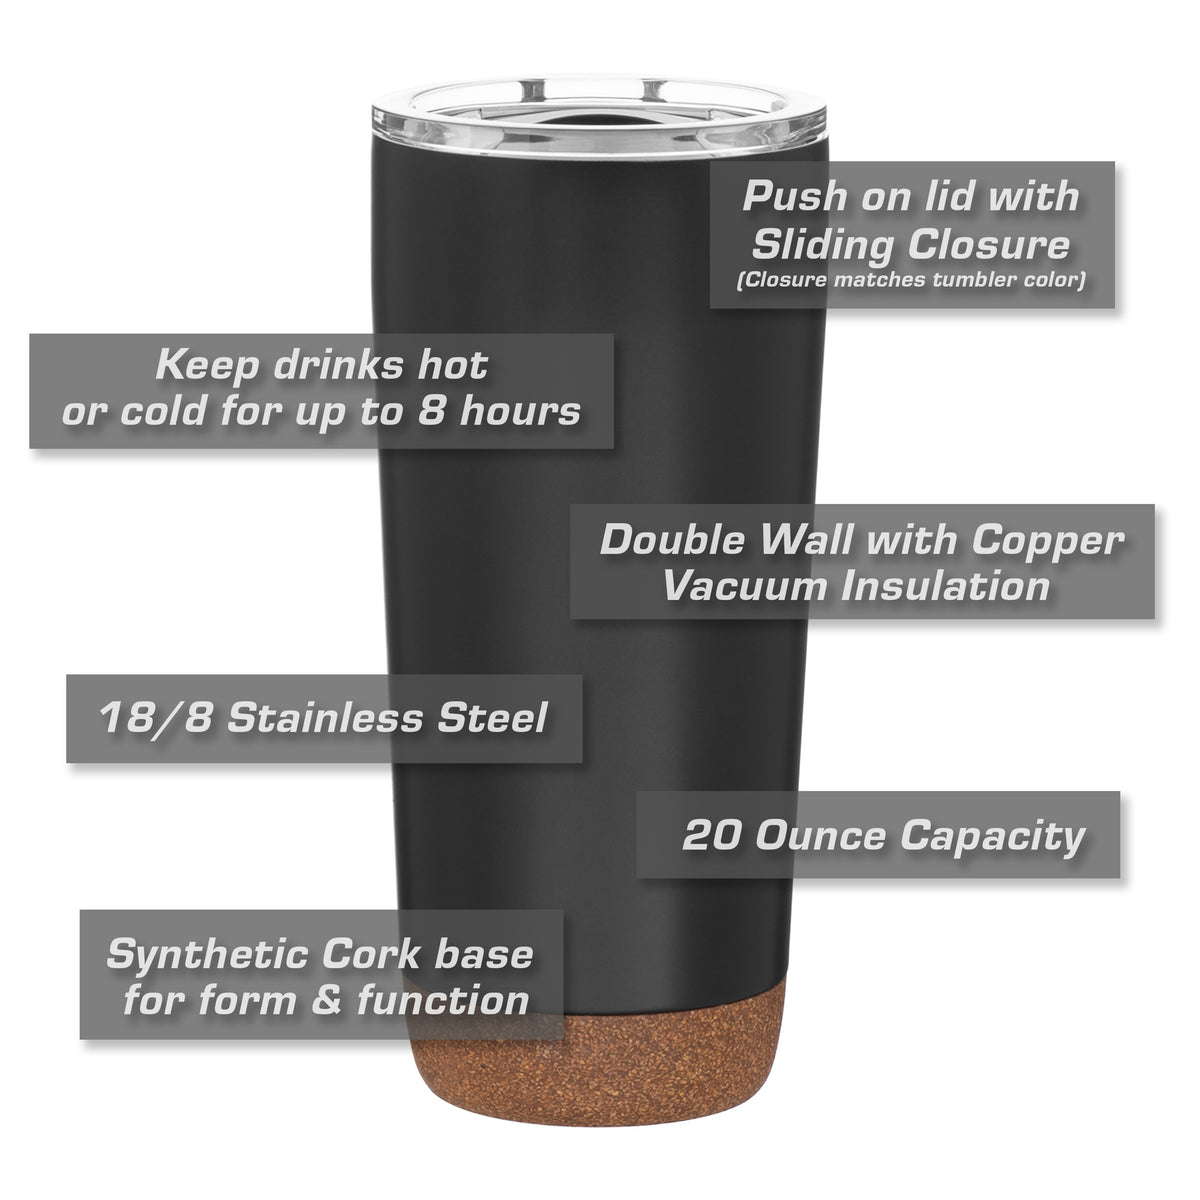 Subaru Impressa WRX STI Rally Insulated Stainless Steel Coffee Tumbler - 20 oz